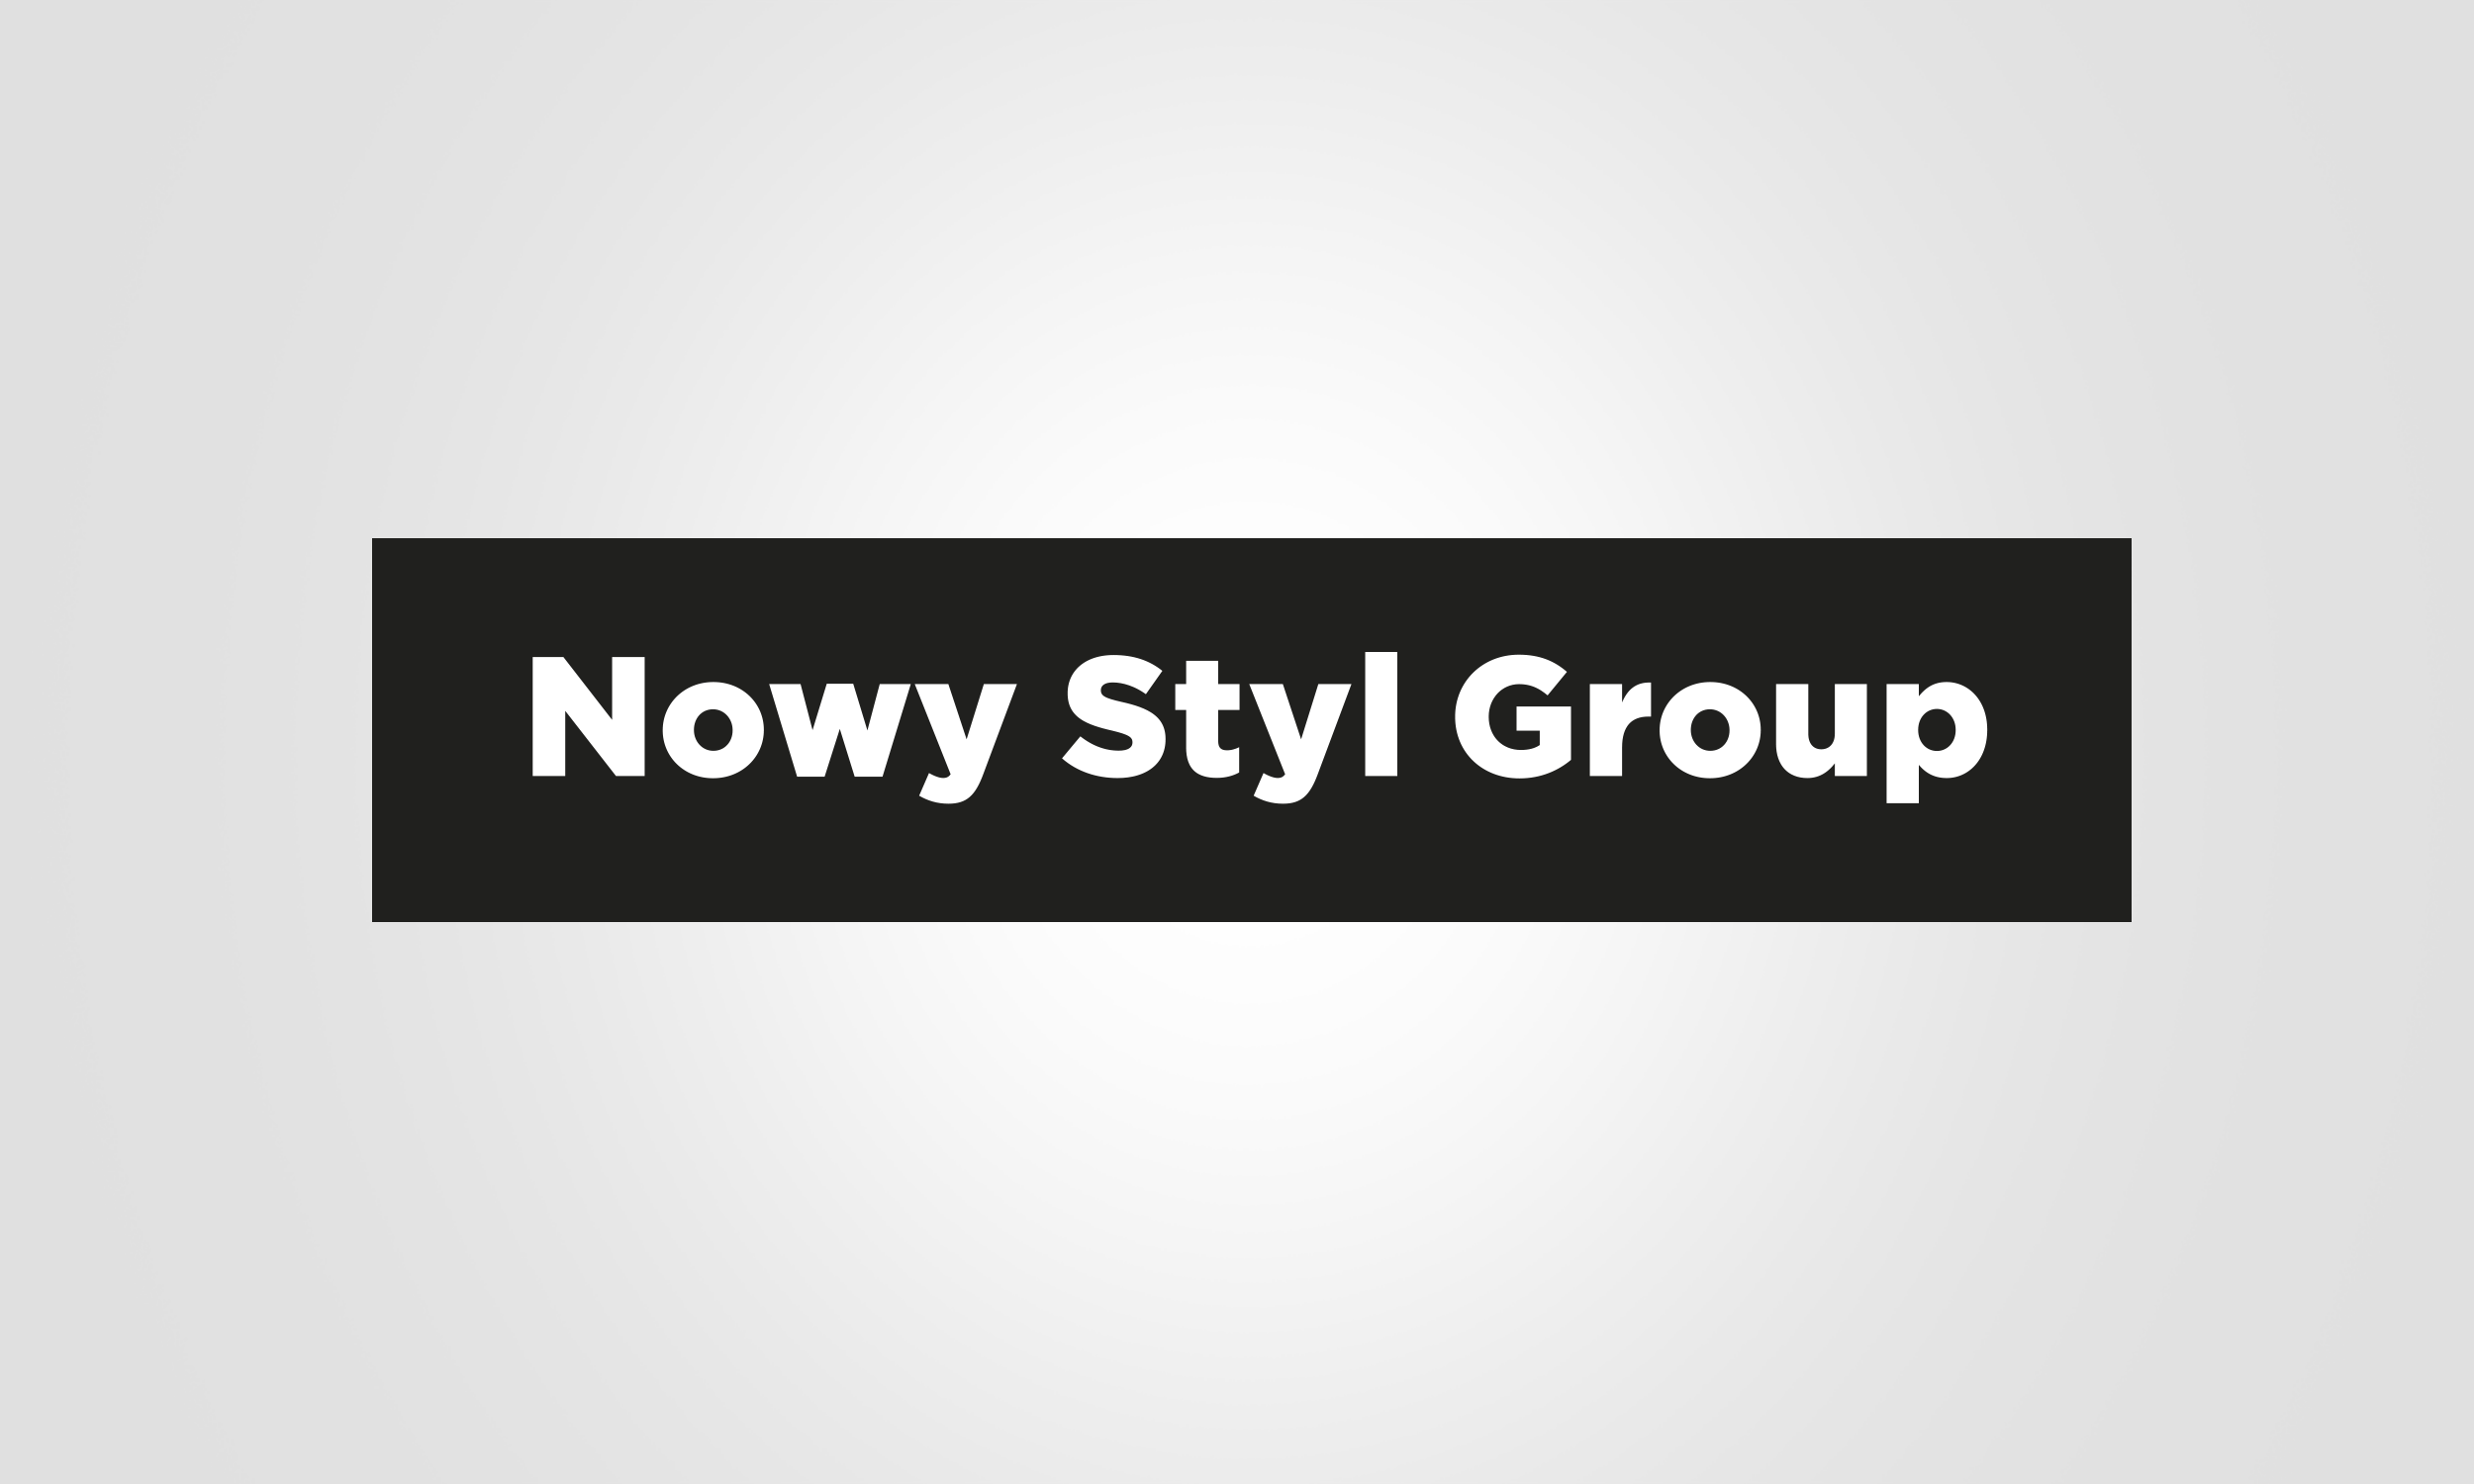 nowy-styl-group_post_logo_2500x1500px.png